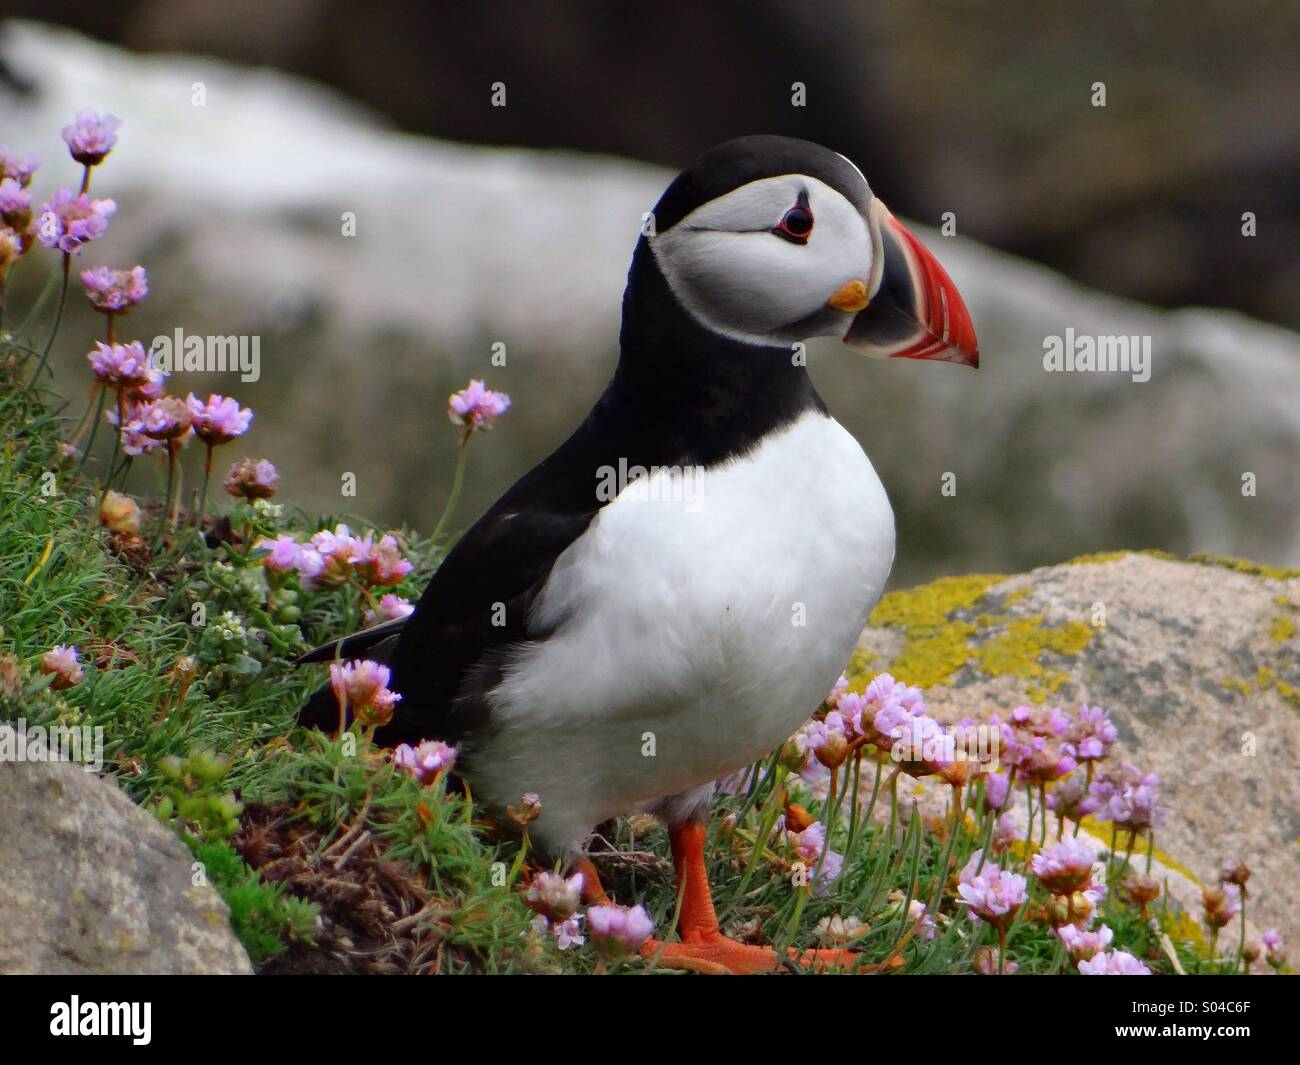 Puffin - Stock Image